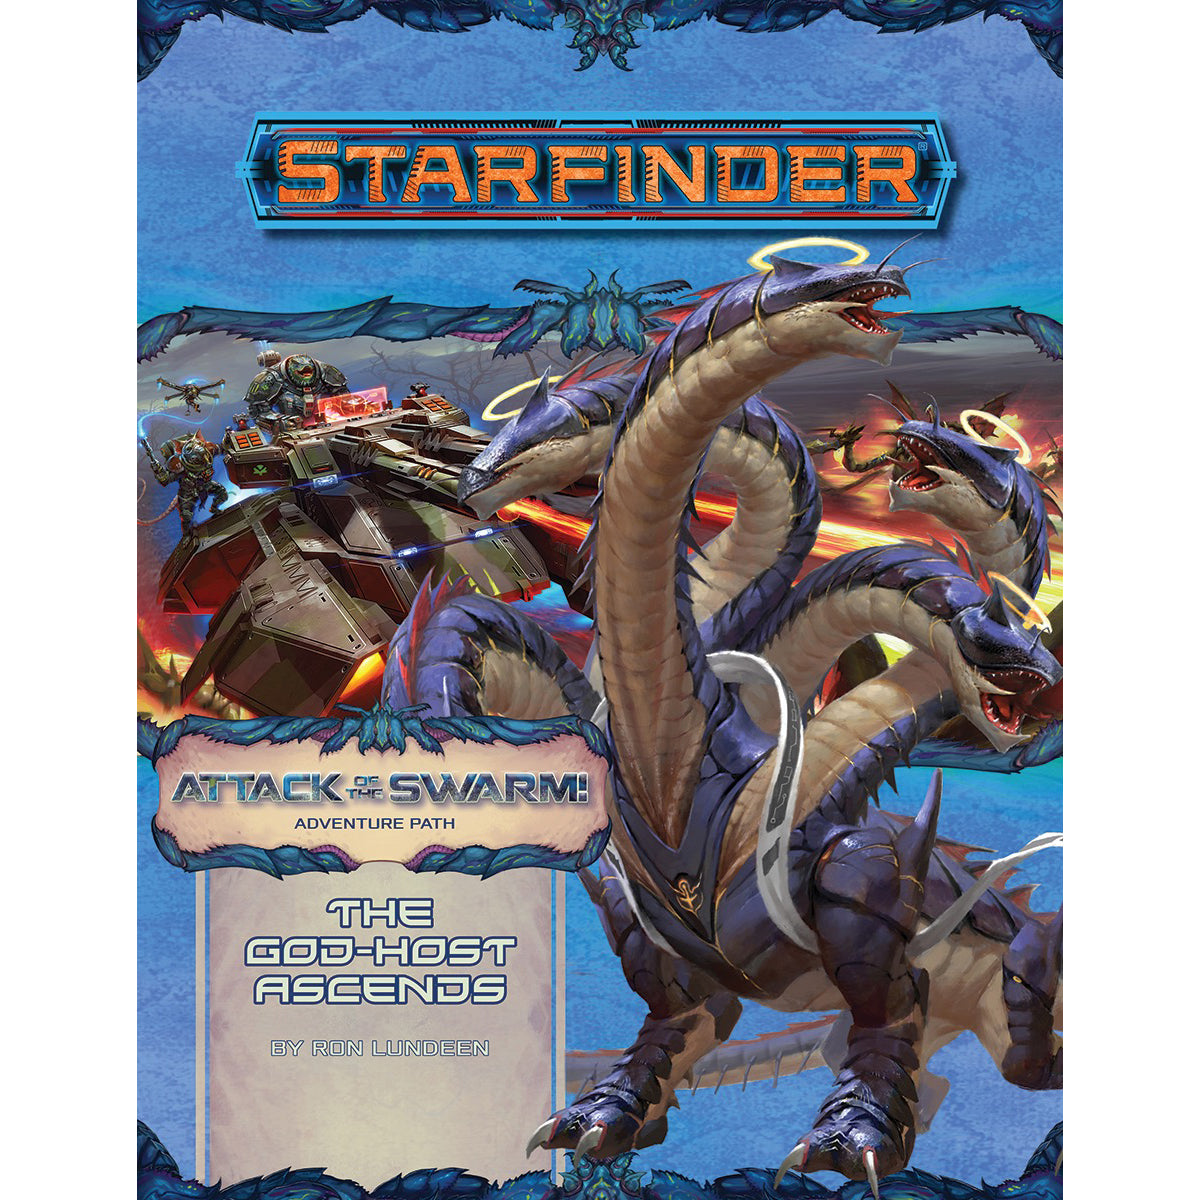 Starfinder Adventure The God-Host Ascends Attack of the Swarm! 6 of 6